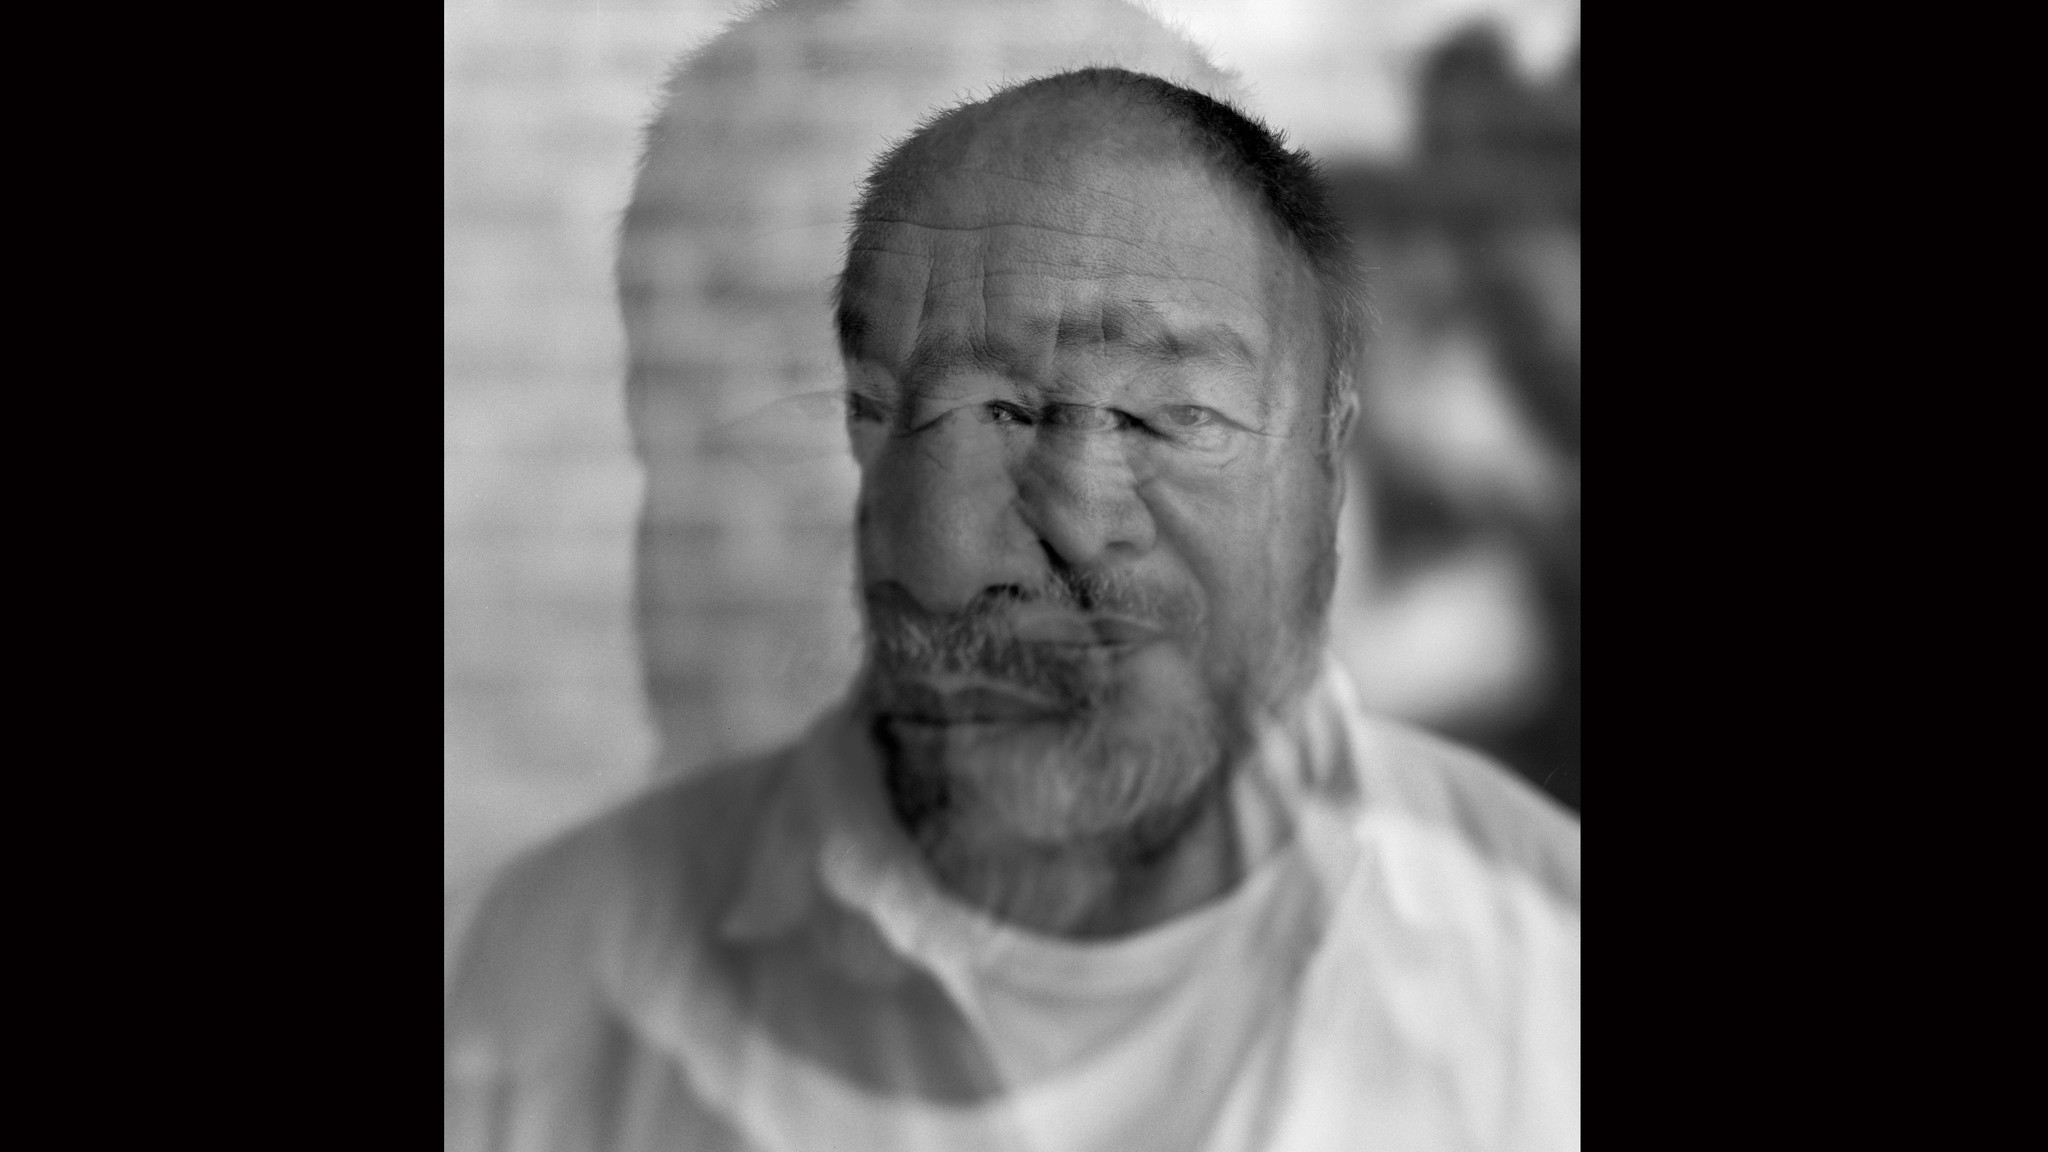 A multiple-exposure portrait of Ai Weiwei, one of China's most famous contemporary artists and a prolific social justice activist. But at his core, Ai insists, he is simply an observer.